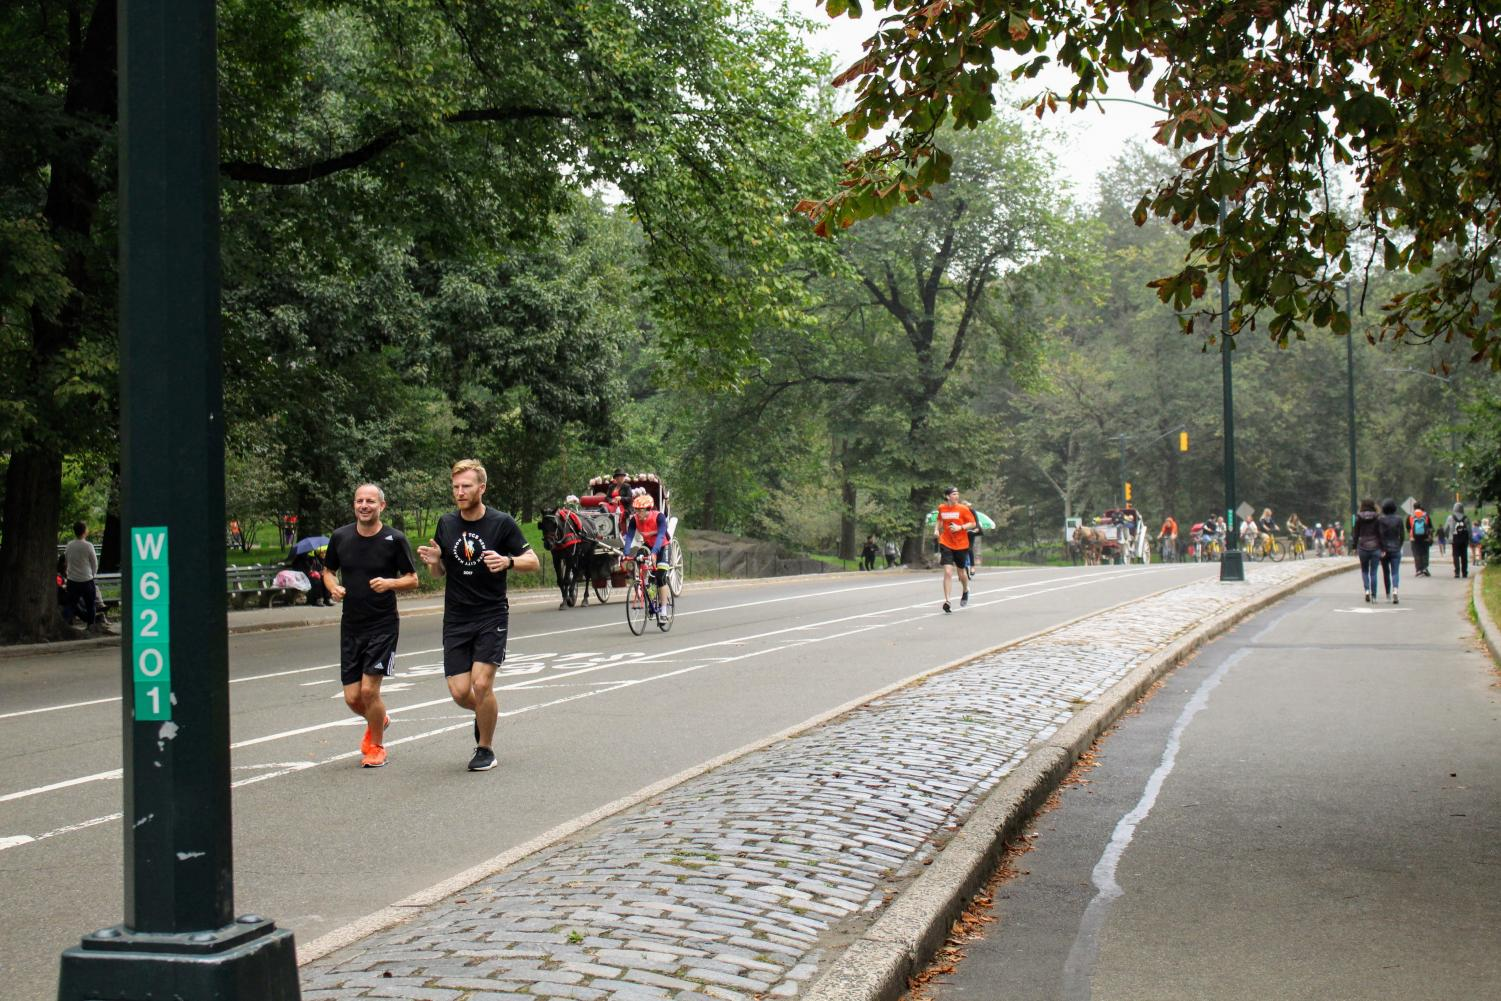 Runners in central park.